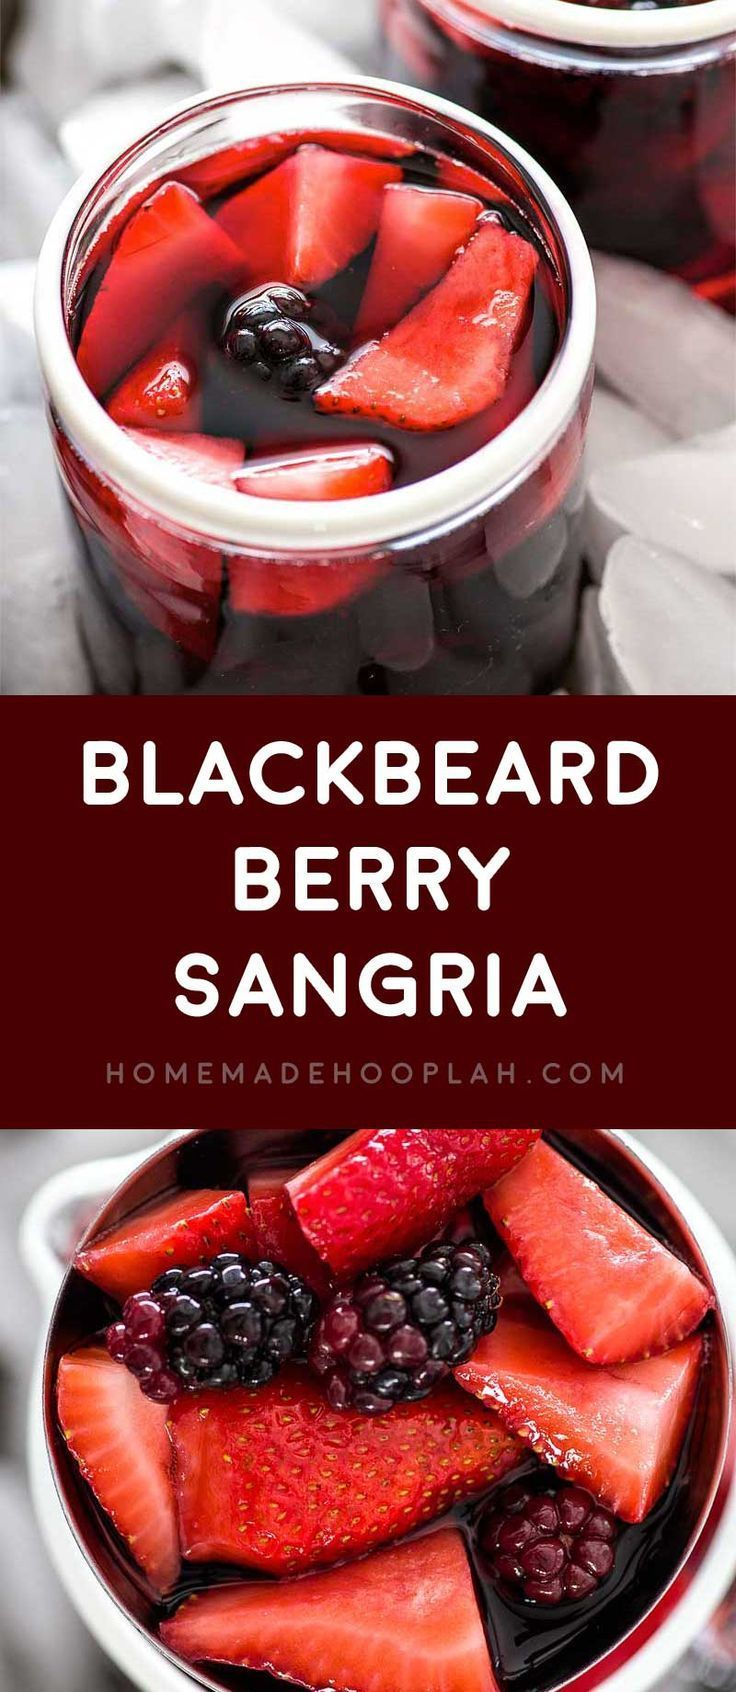 Blackbeard Berry Sangria! Blackberries and strawberries come together with a sweet red wine and a kick of Absinthe to make this very berry sangria! | HomemadeHooplah.com